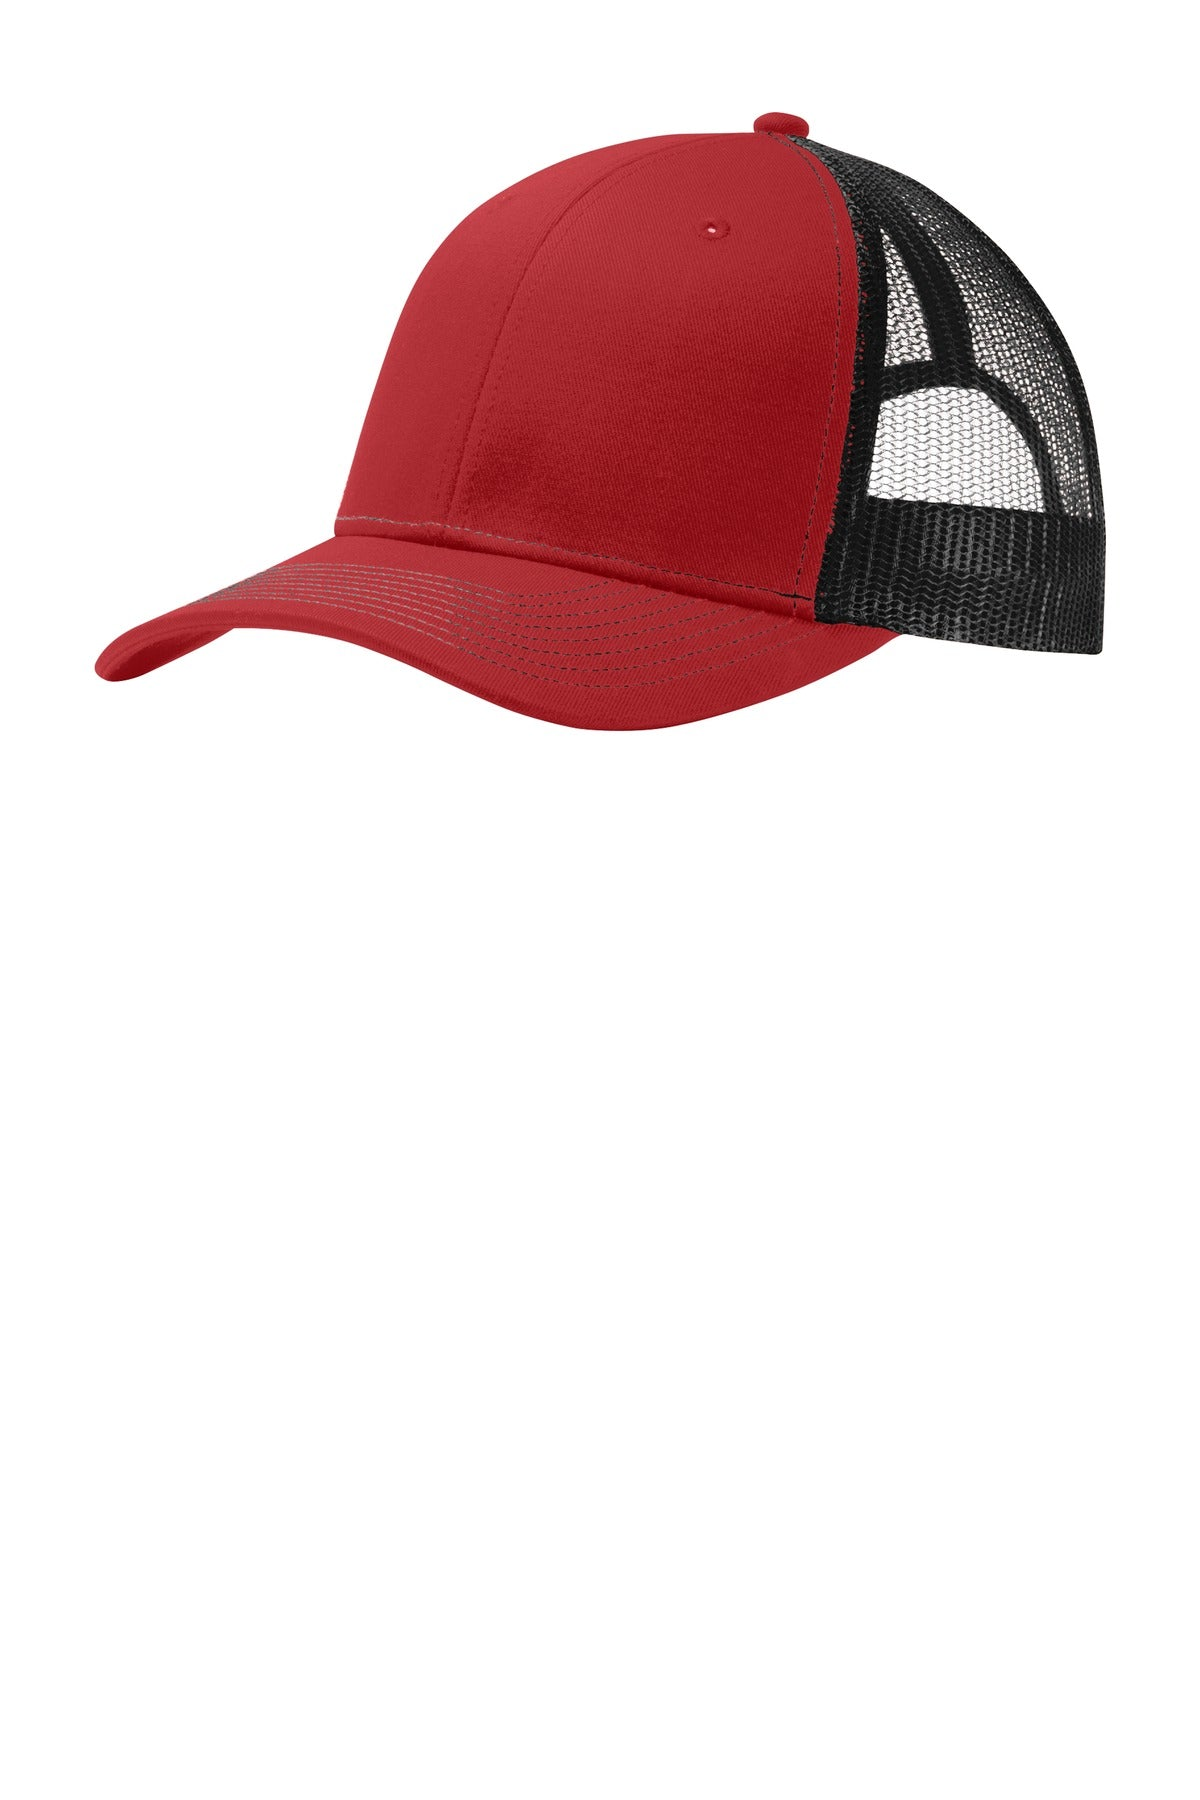 Flame Red / Black Port Authority Snapback Trucker Cap